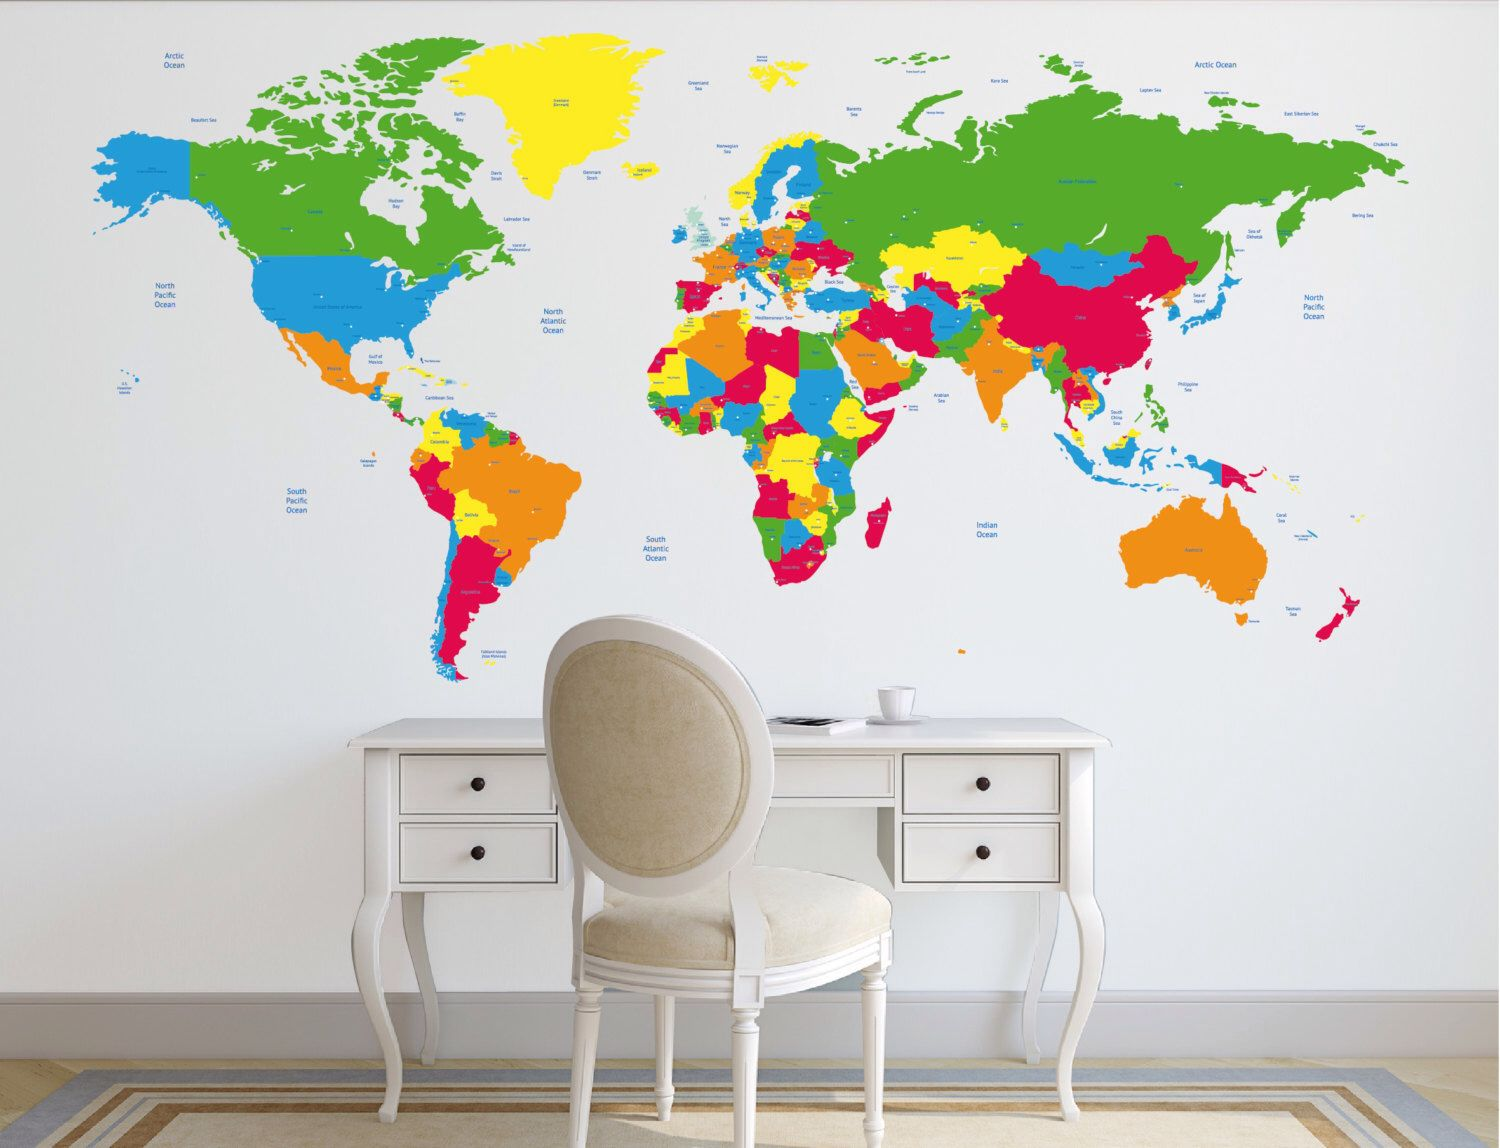 World map decal political world map wall decal country names map world map decal political world map wall decal country names map wall sticker gumiabroncs Images